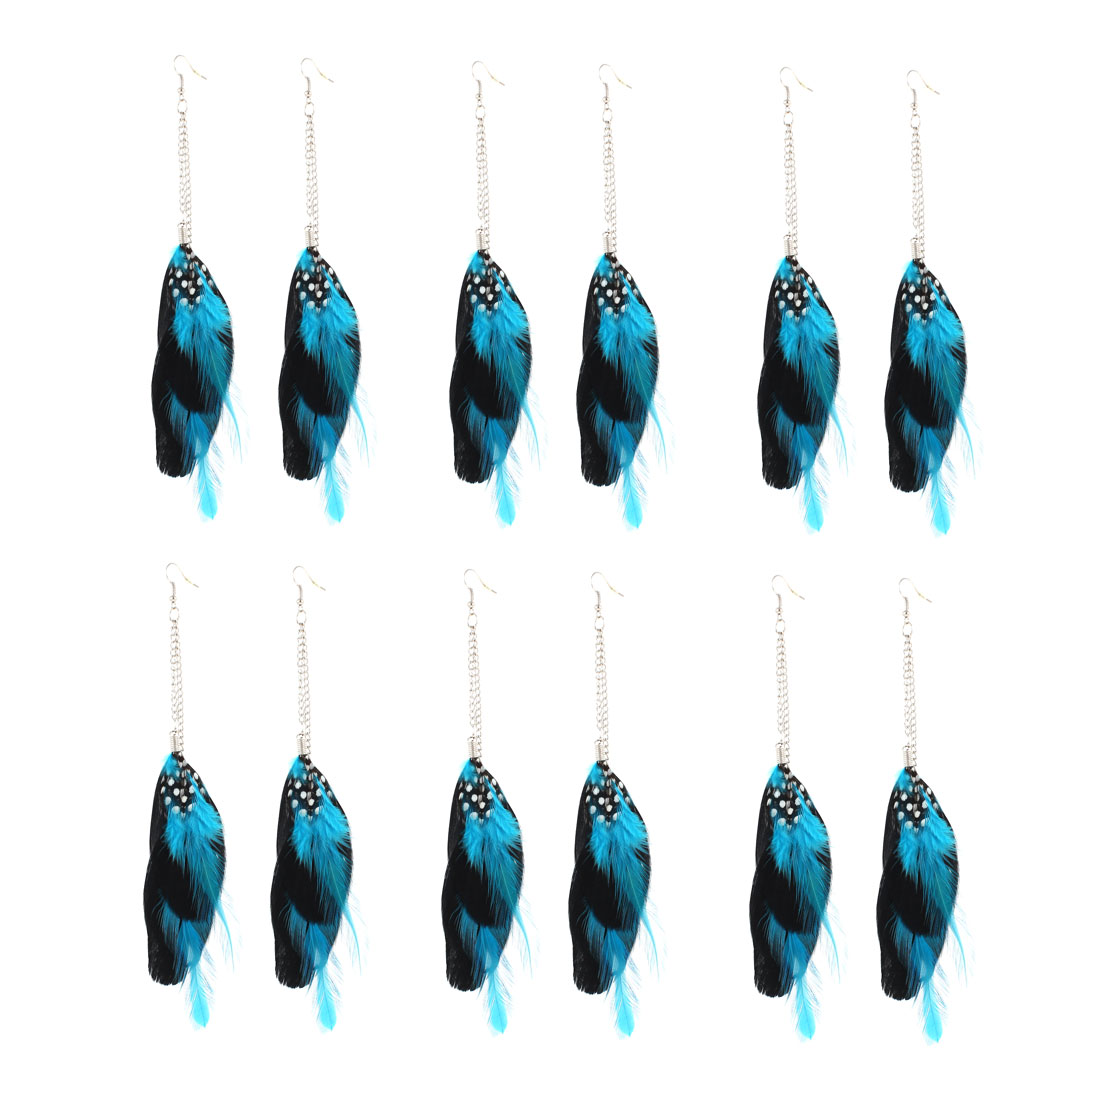 6 Pairs Blue Black Faux Feathers Metal Chains Pendant Earring Eardrop for Lady